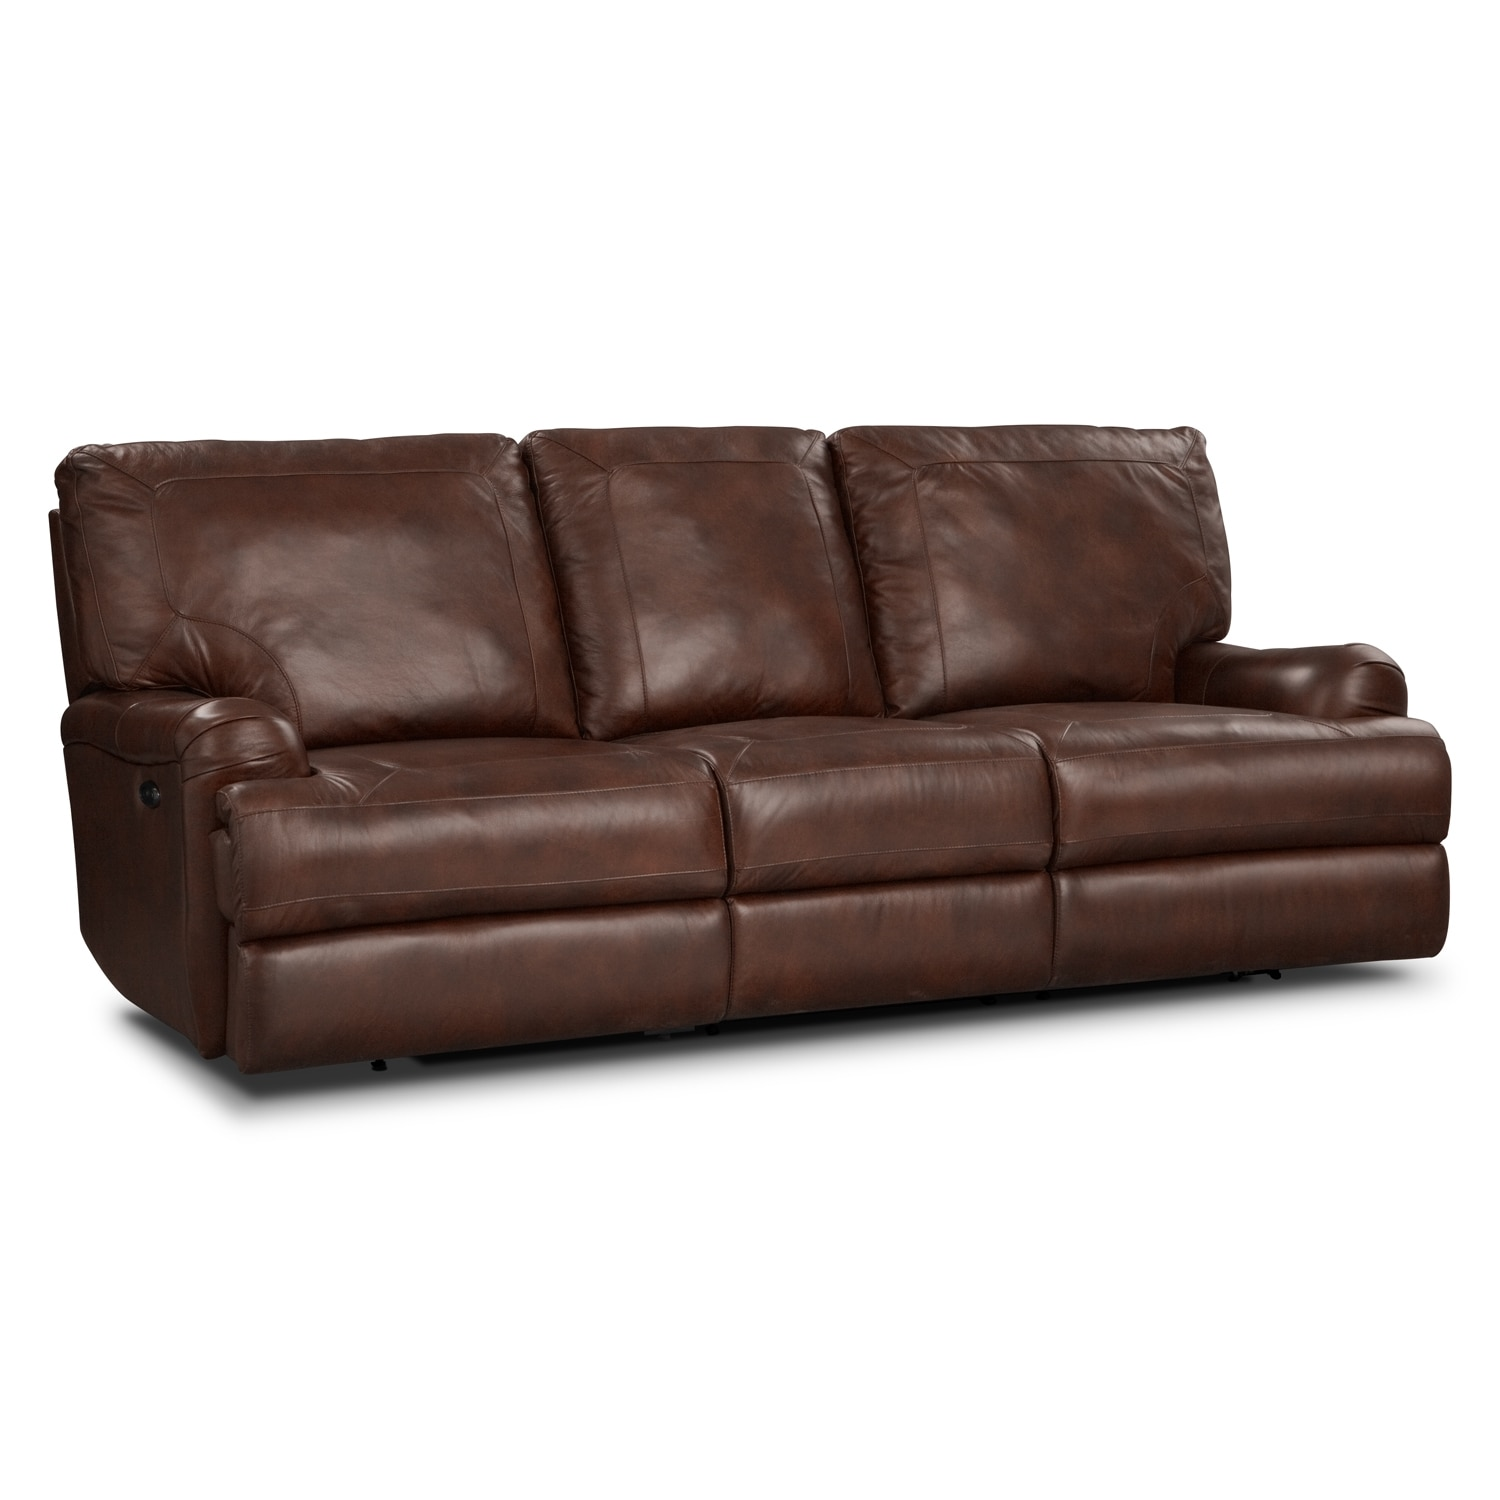 Kingsway leather power reclining sofa value city furniture for Leather reclining sofa